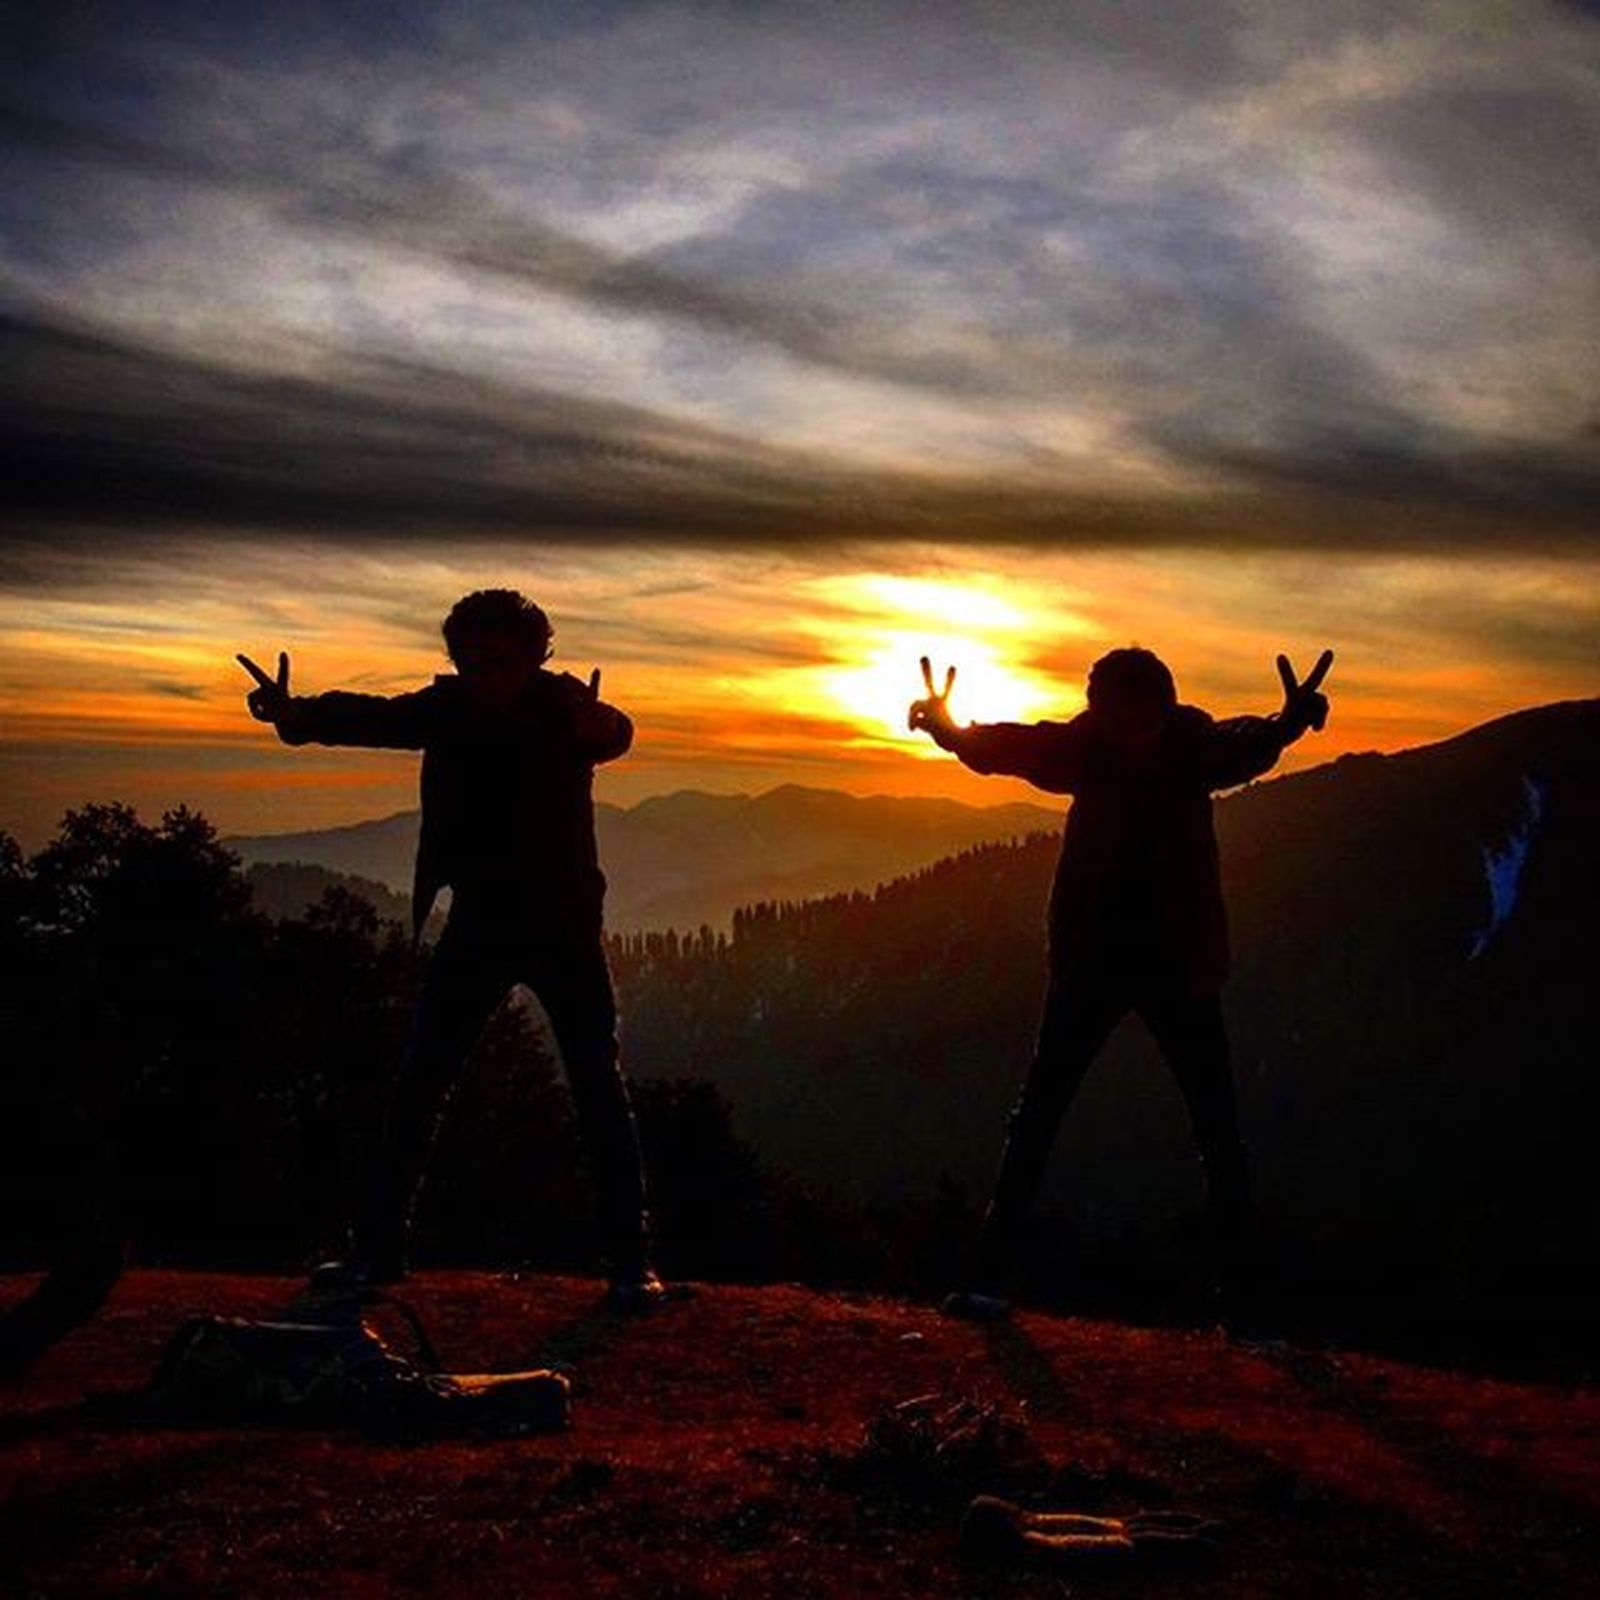 Sunset Athighplaces Enjoylife CrazyWe Naturelovers Freedomlovers Happymoments NewYearClick Happynewyear Brothers ★ Stayhigh Staypositive Staystrong ★